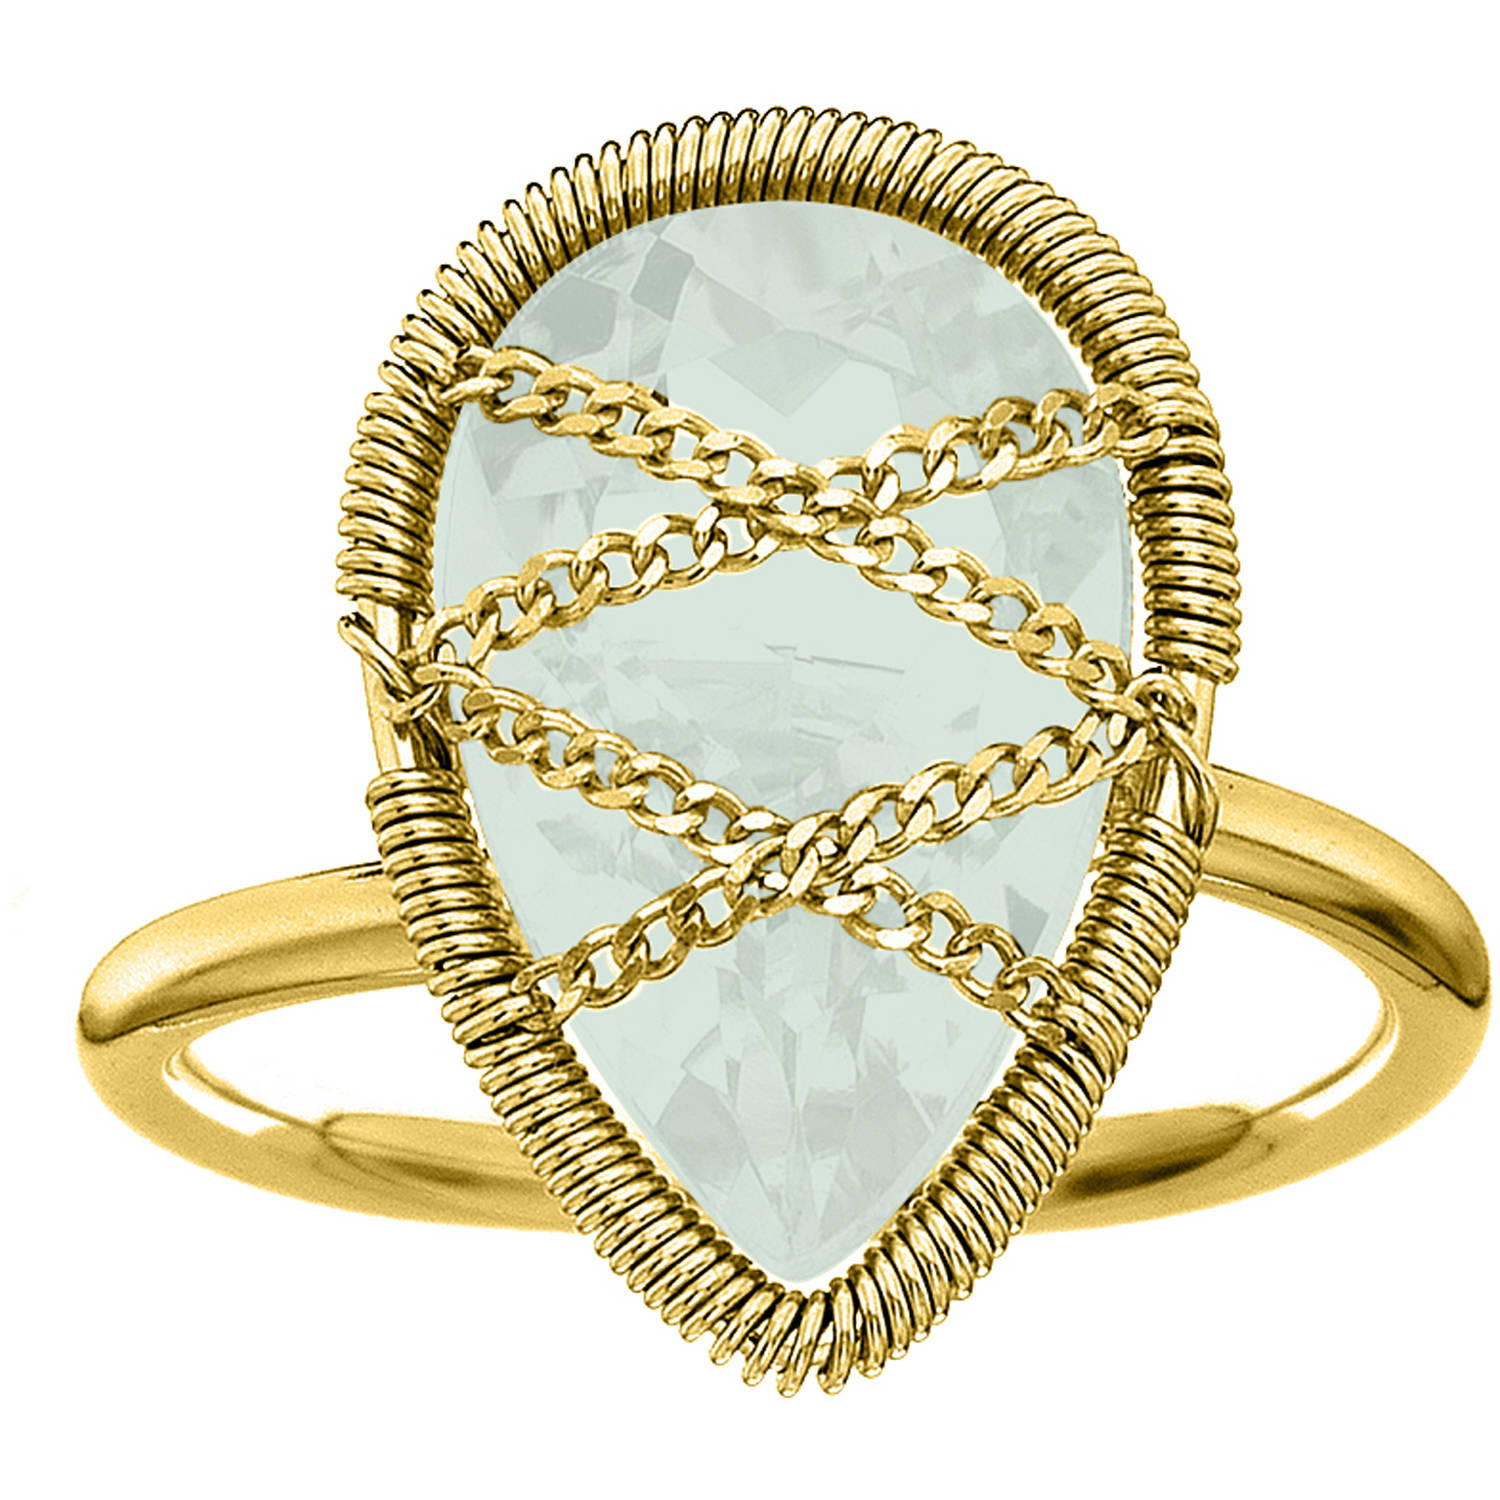 Image of 5th & Main 18kt Gold over Sterling Silver Hand-Wrapped Teardrop Chalcedony Stone Ring